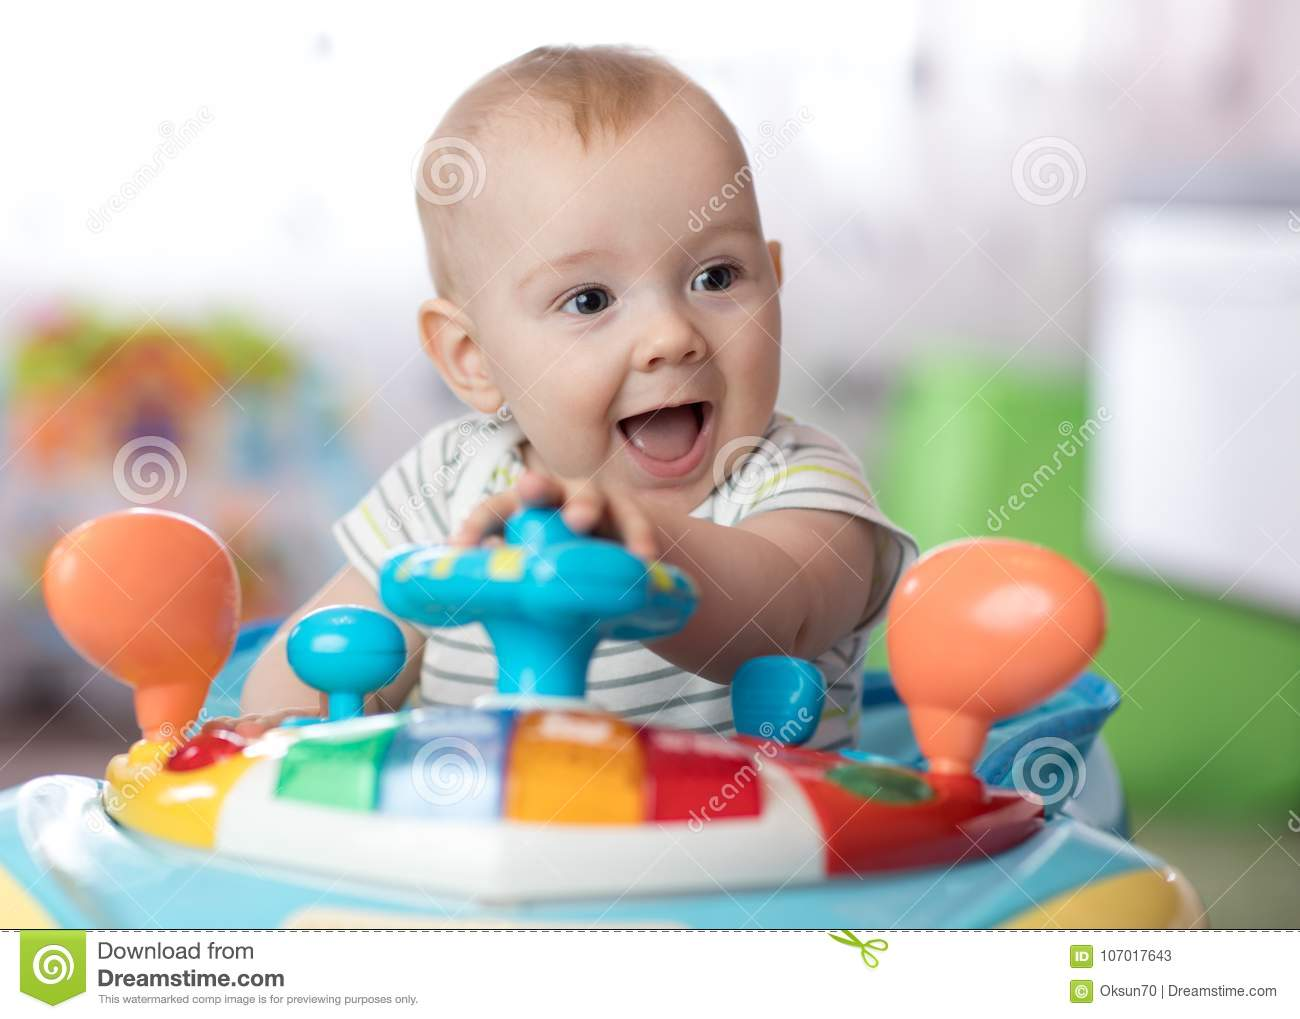 8c6b25a4c Funny Baby Playing In Baby Jumper Stock Image - Image of excited ...